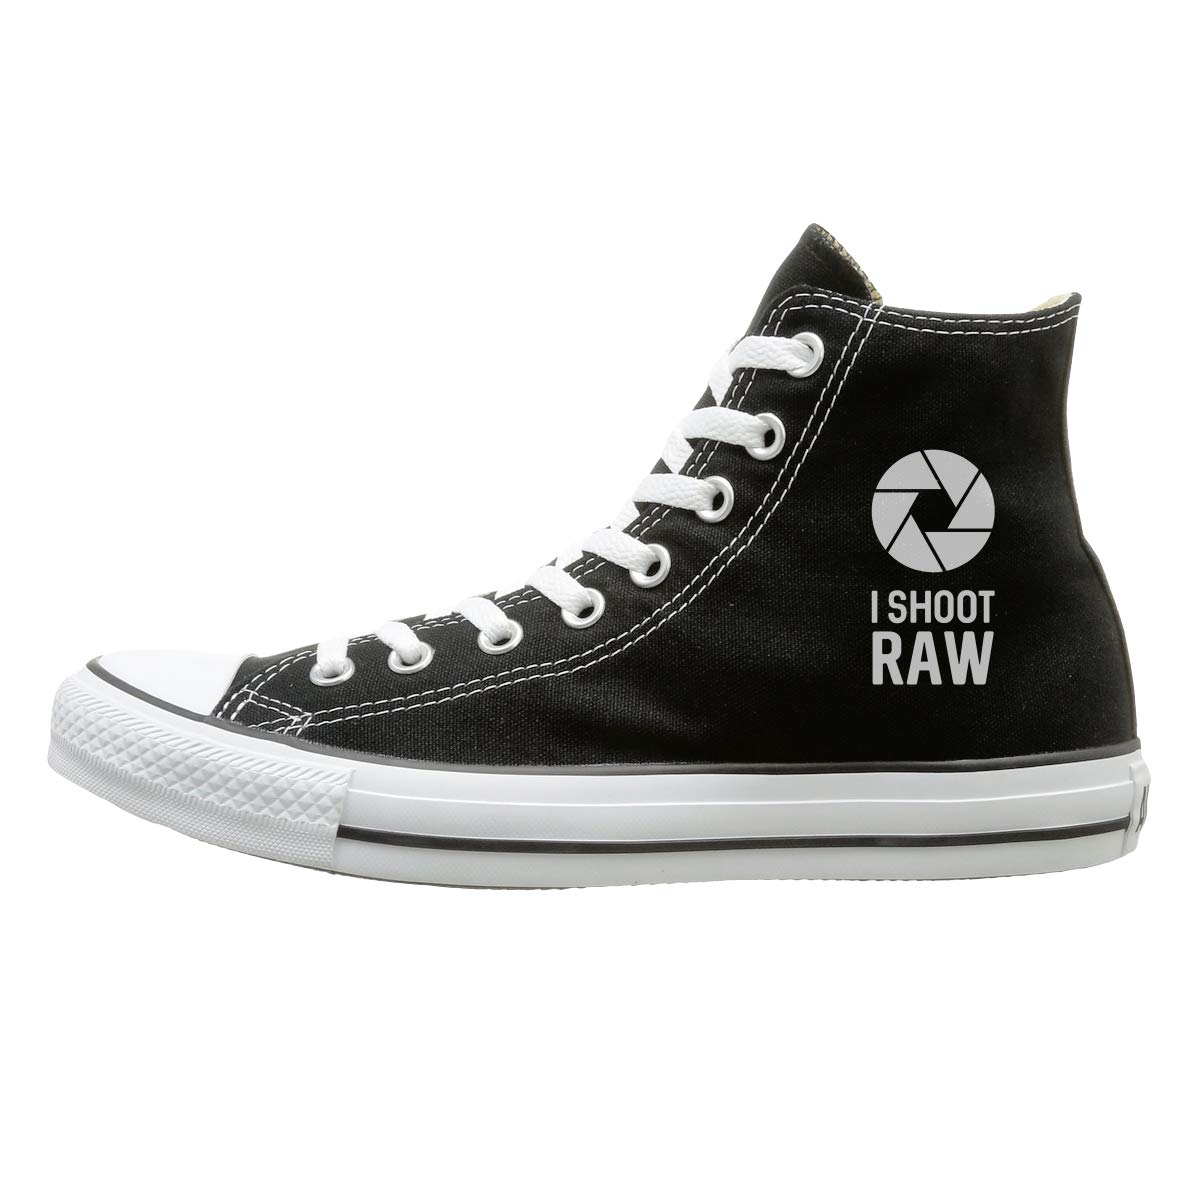 Sakanpo I Shoot Raw Canvas Shoes High Top Design Black Sneakers Unisex Style